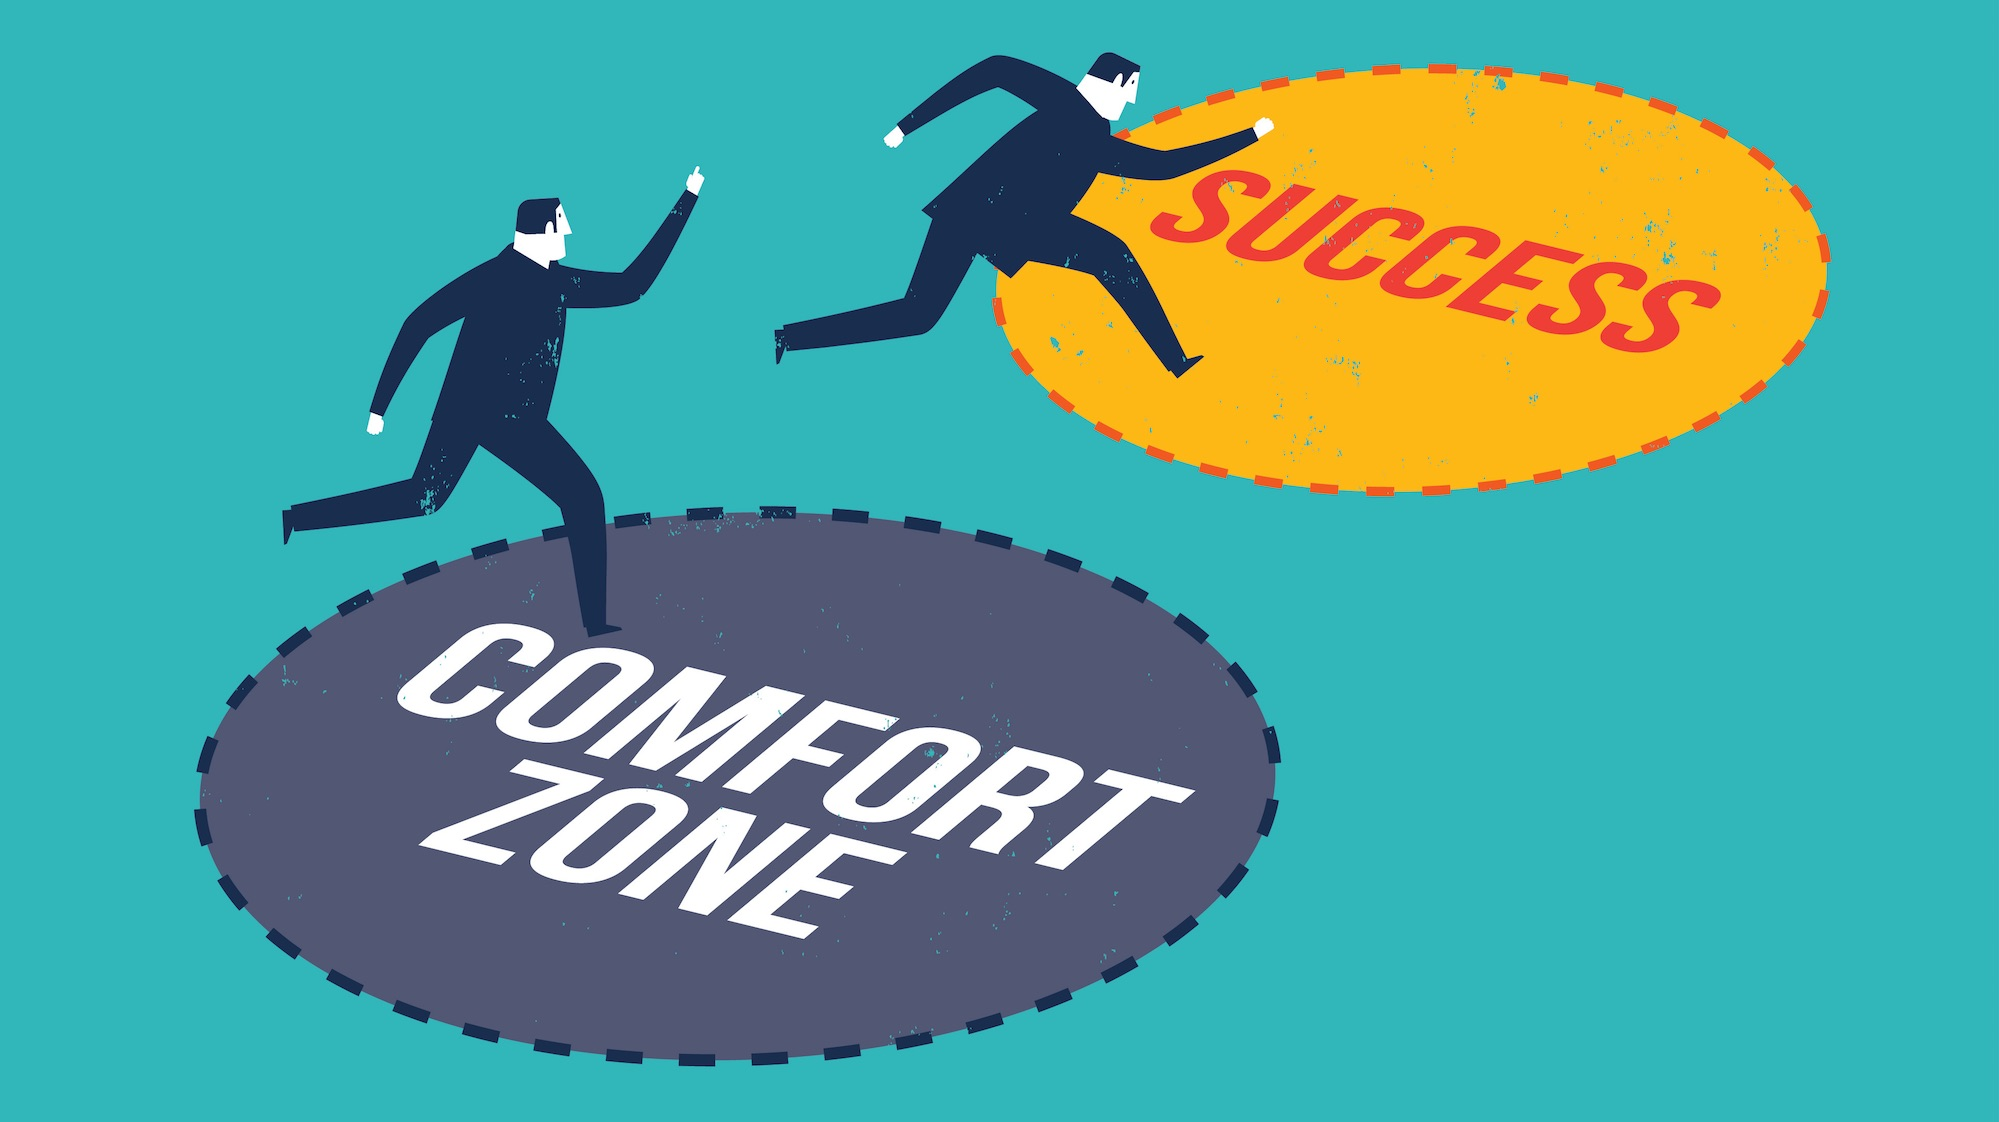 Karan gandhi perspectives thoughts on leadership for Comfort zone